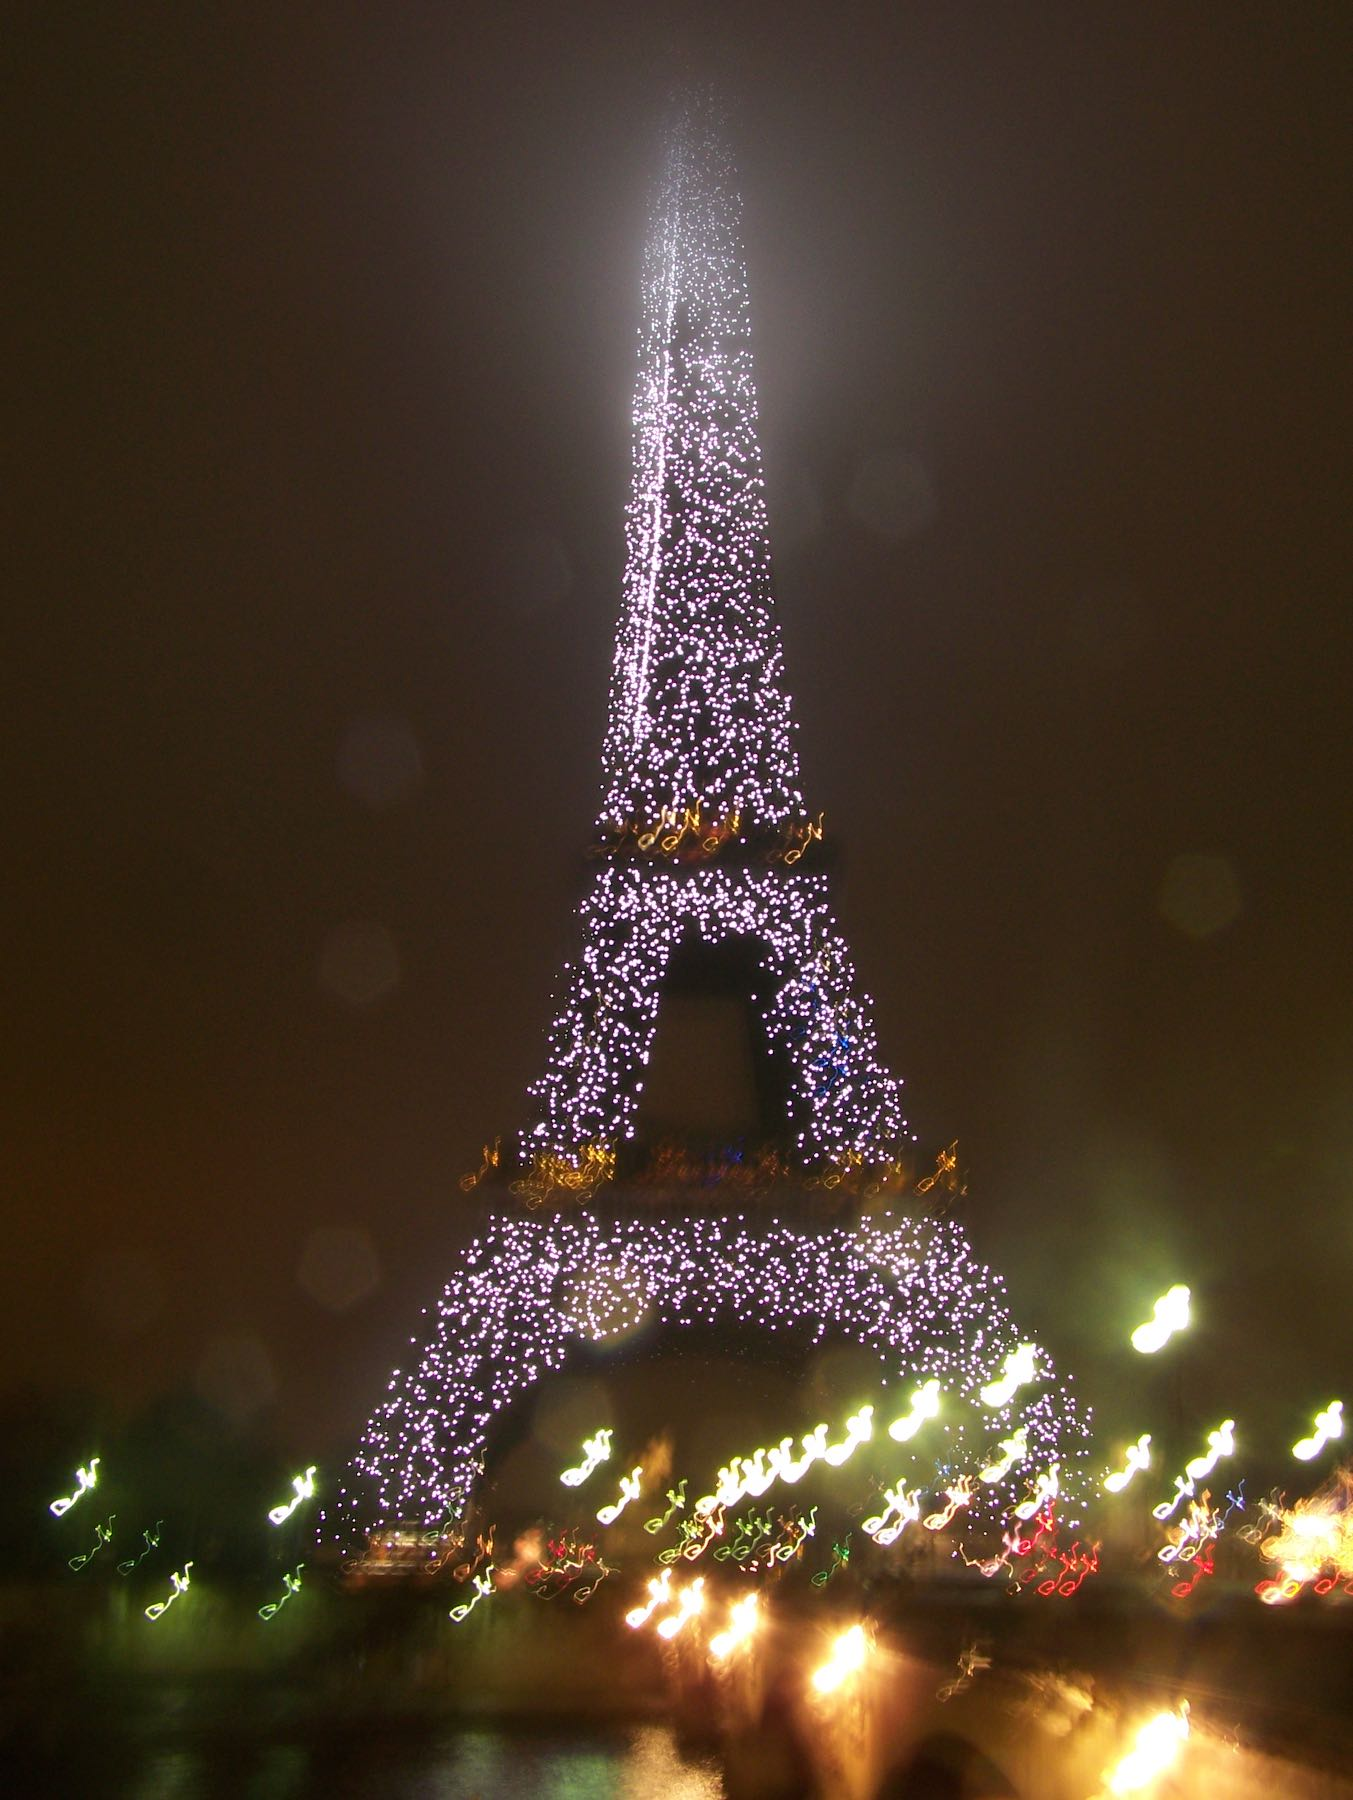 Eiffel tower in Paris at night with lights